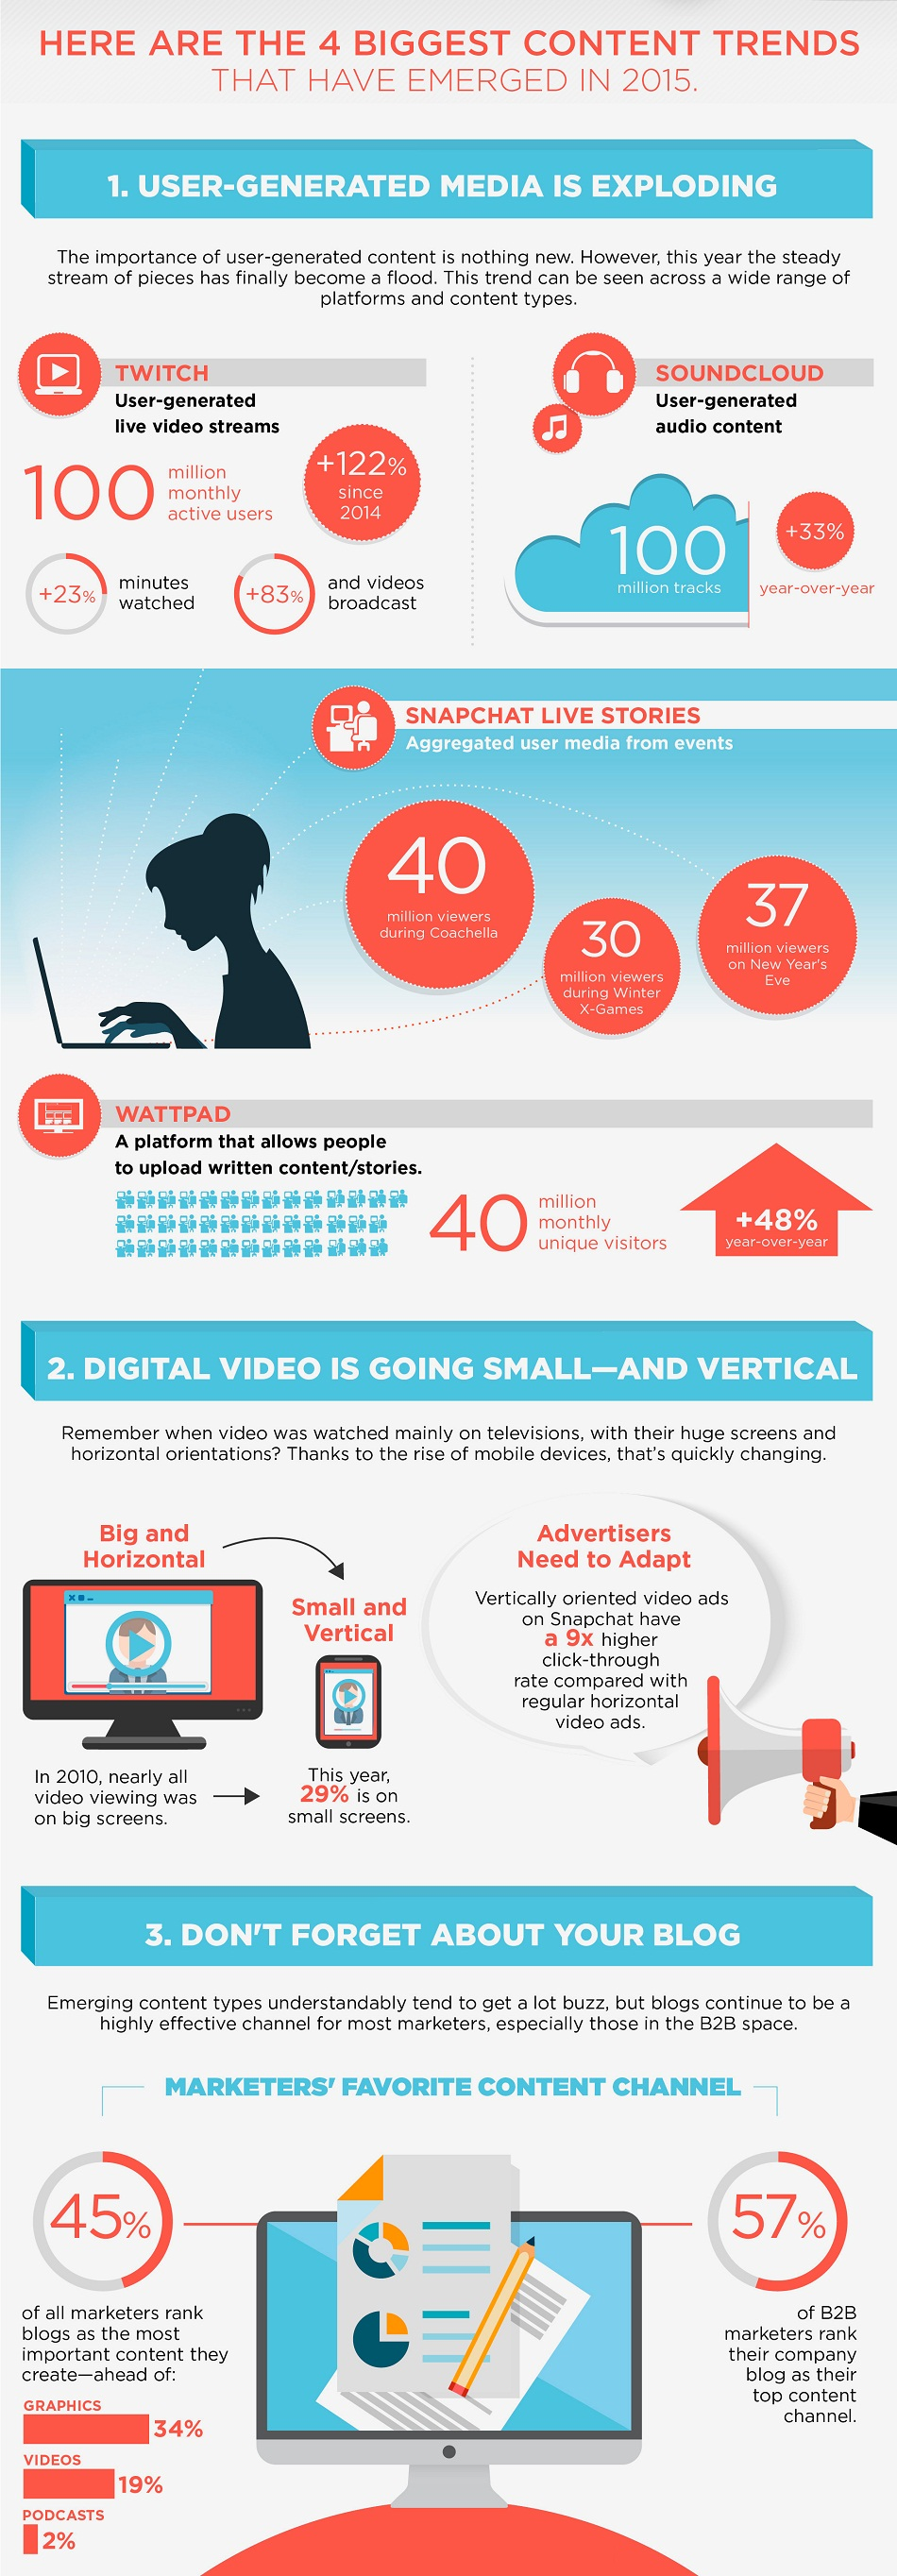 the state of the internet 2015 content trends infographic